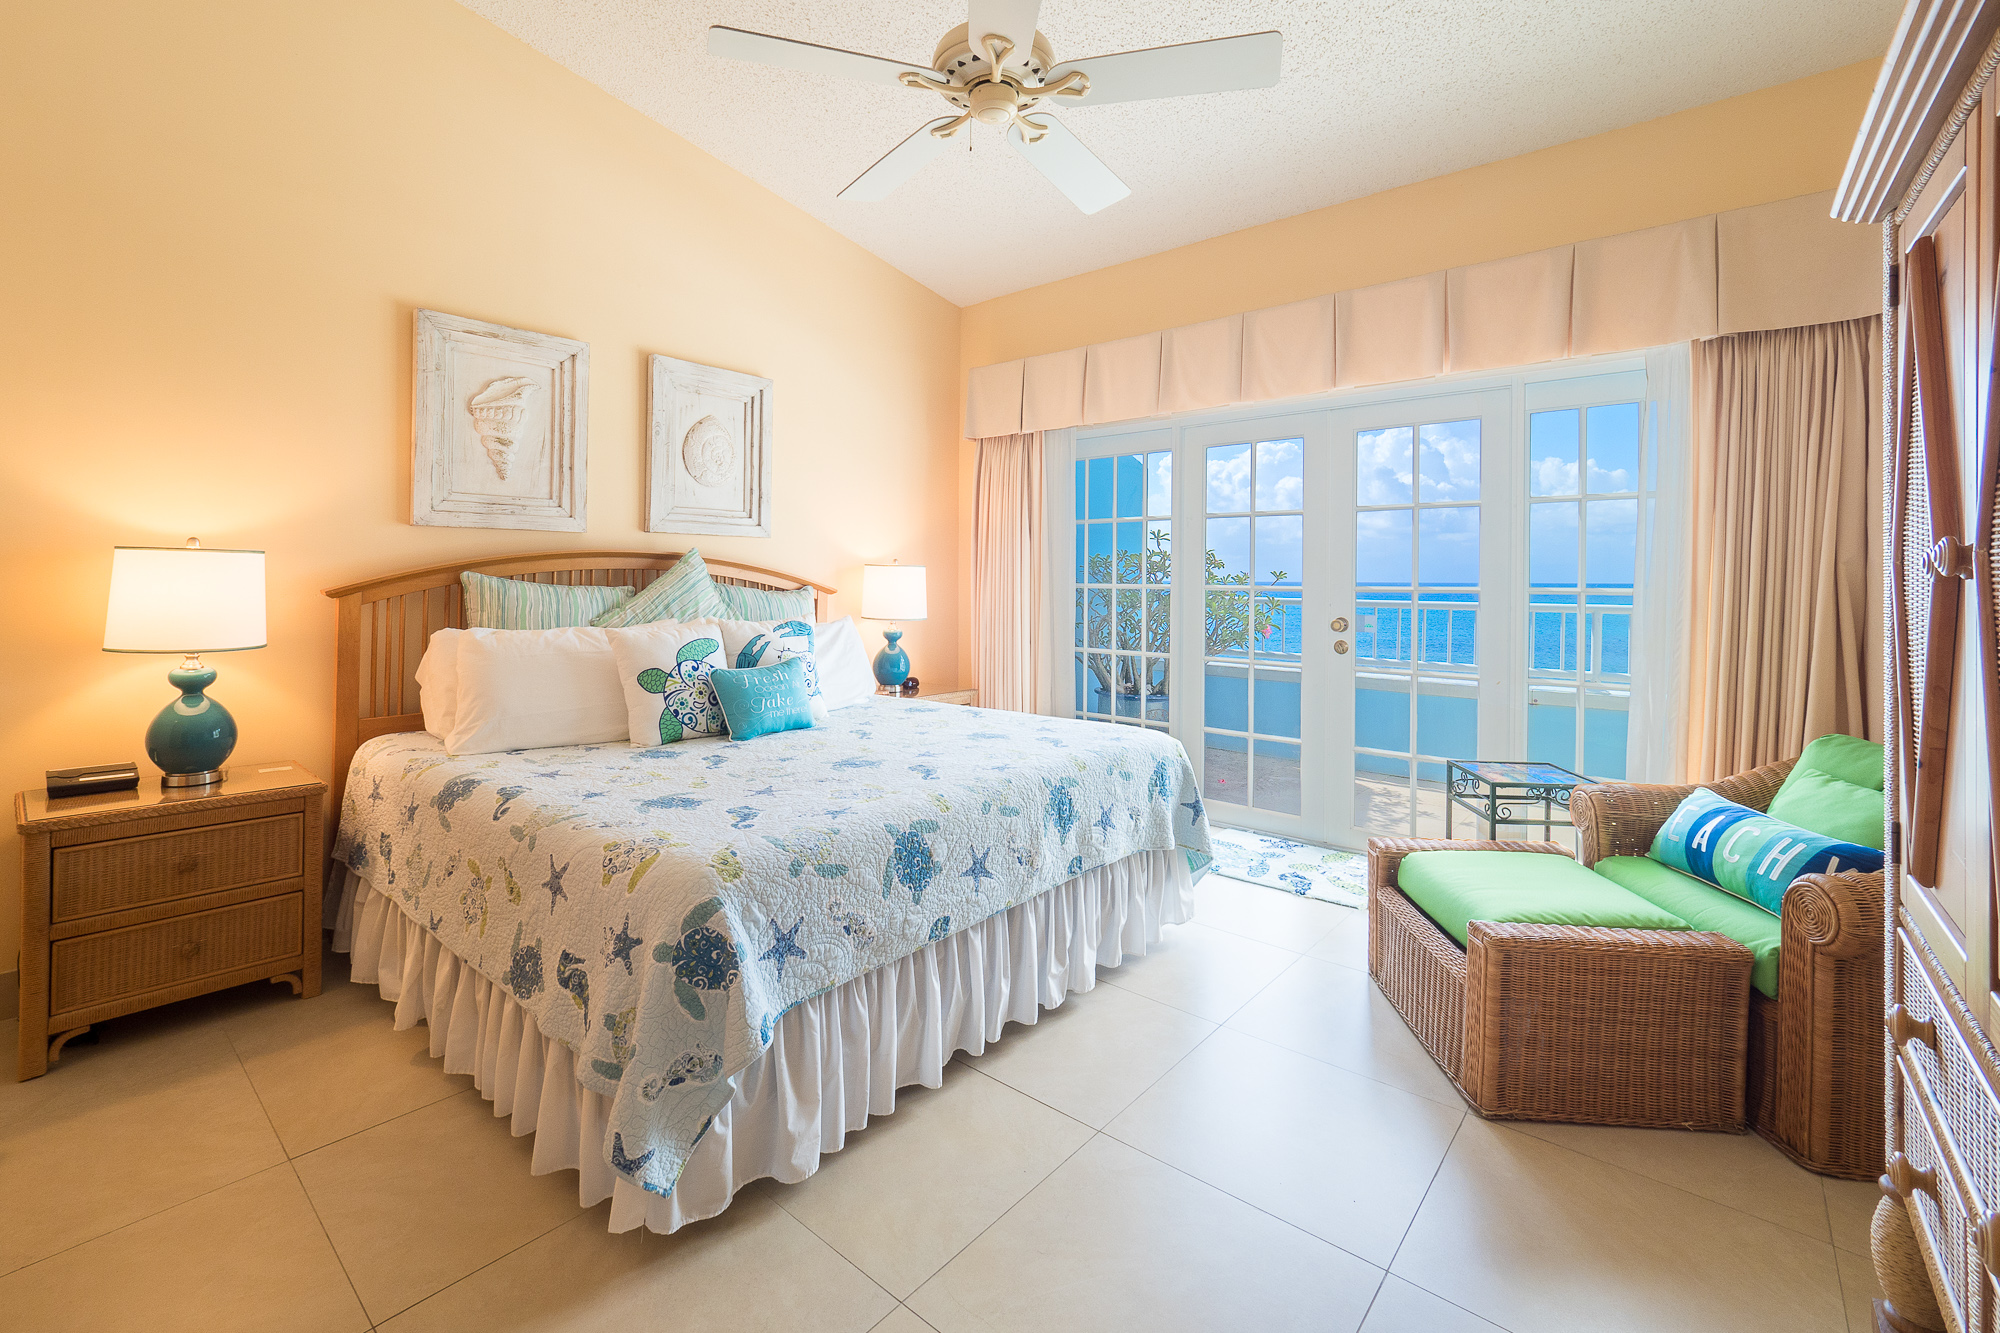 Master bedroom with grand views of the ocean